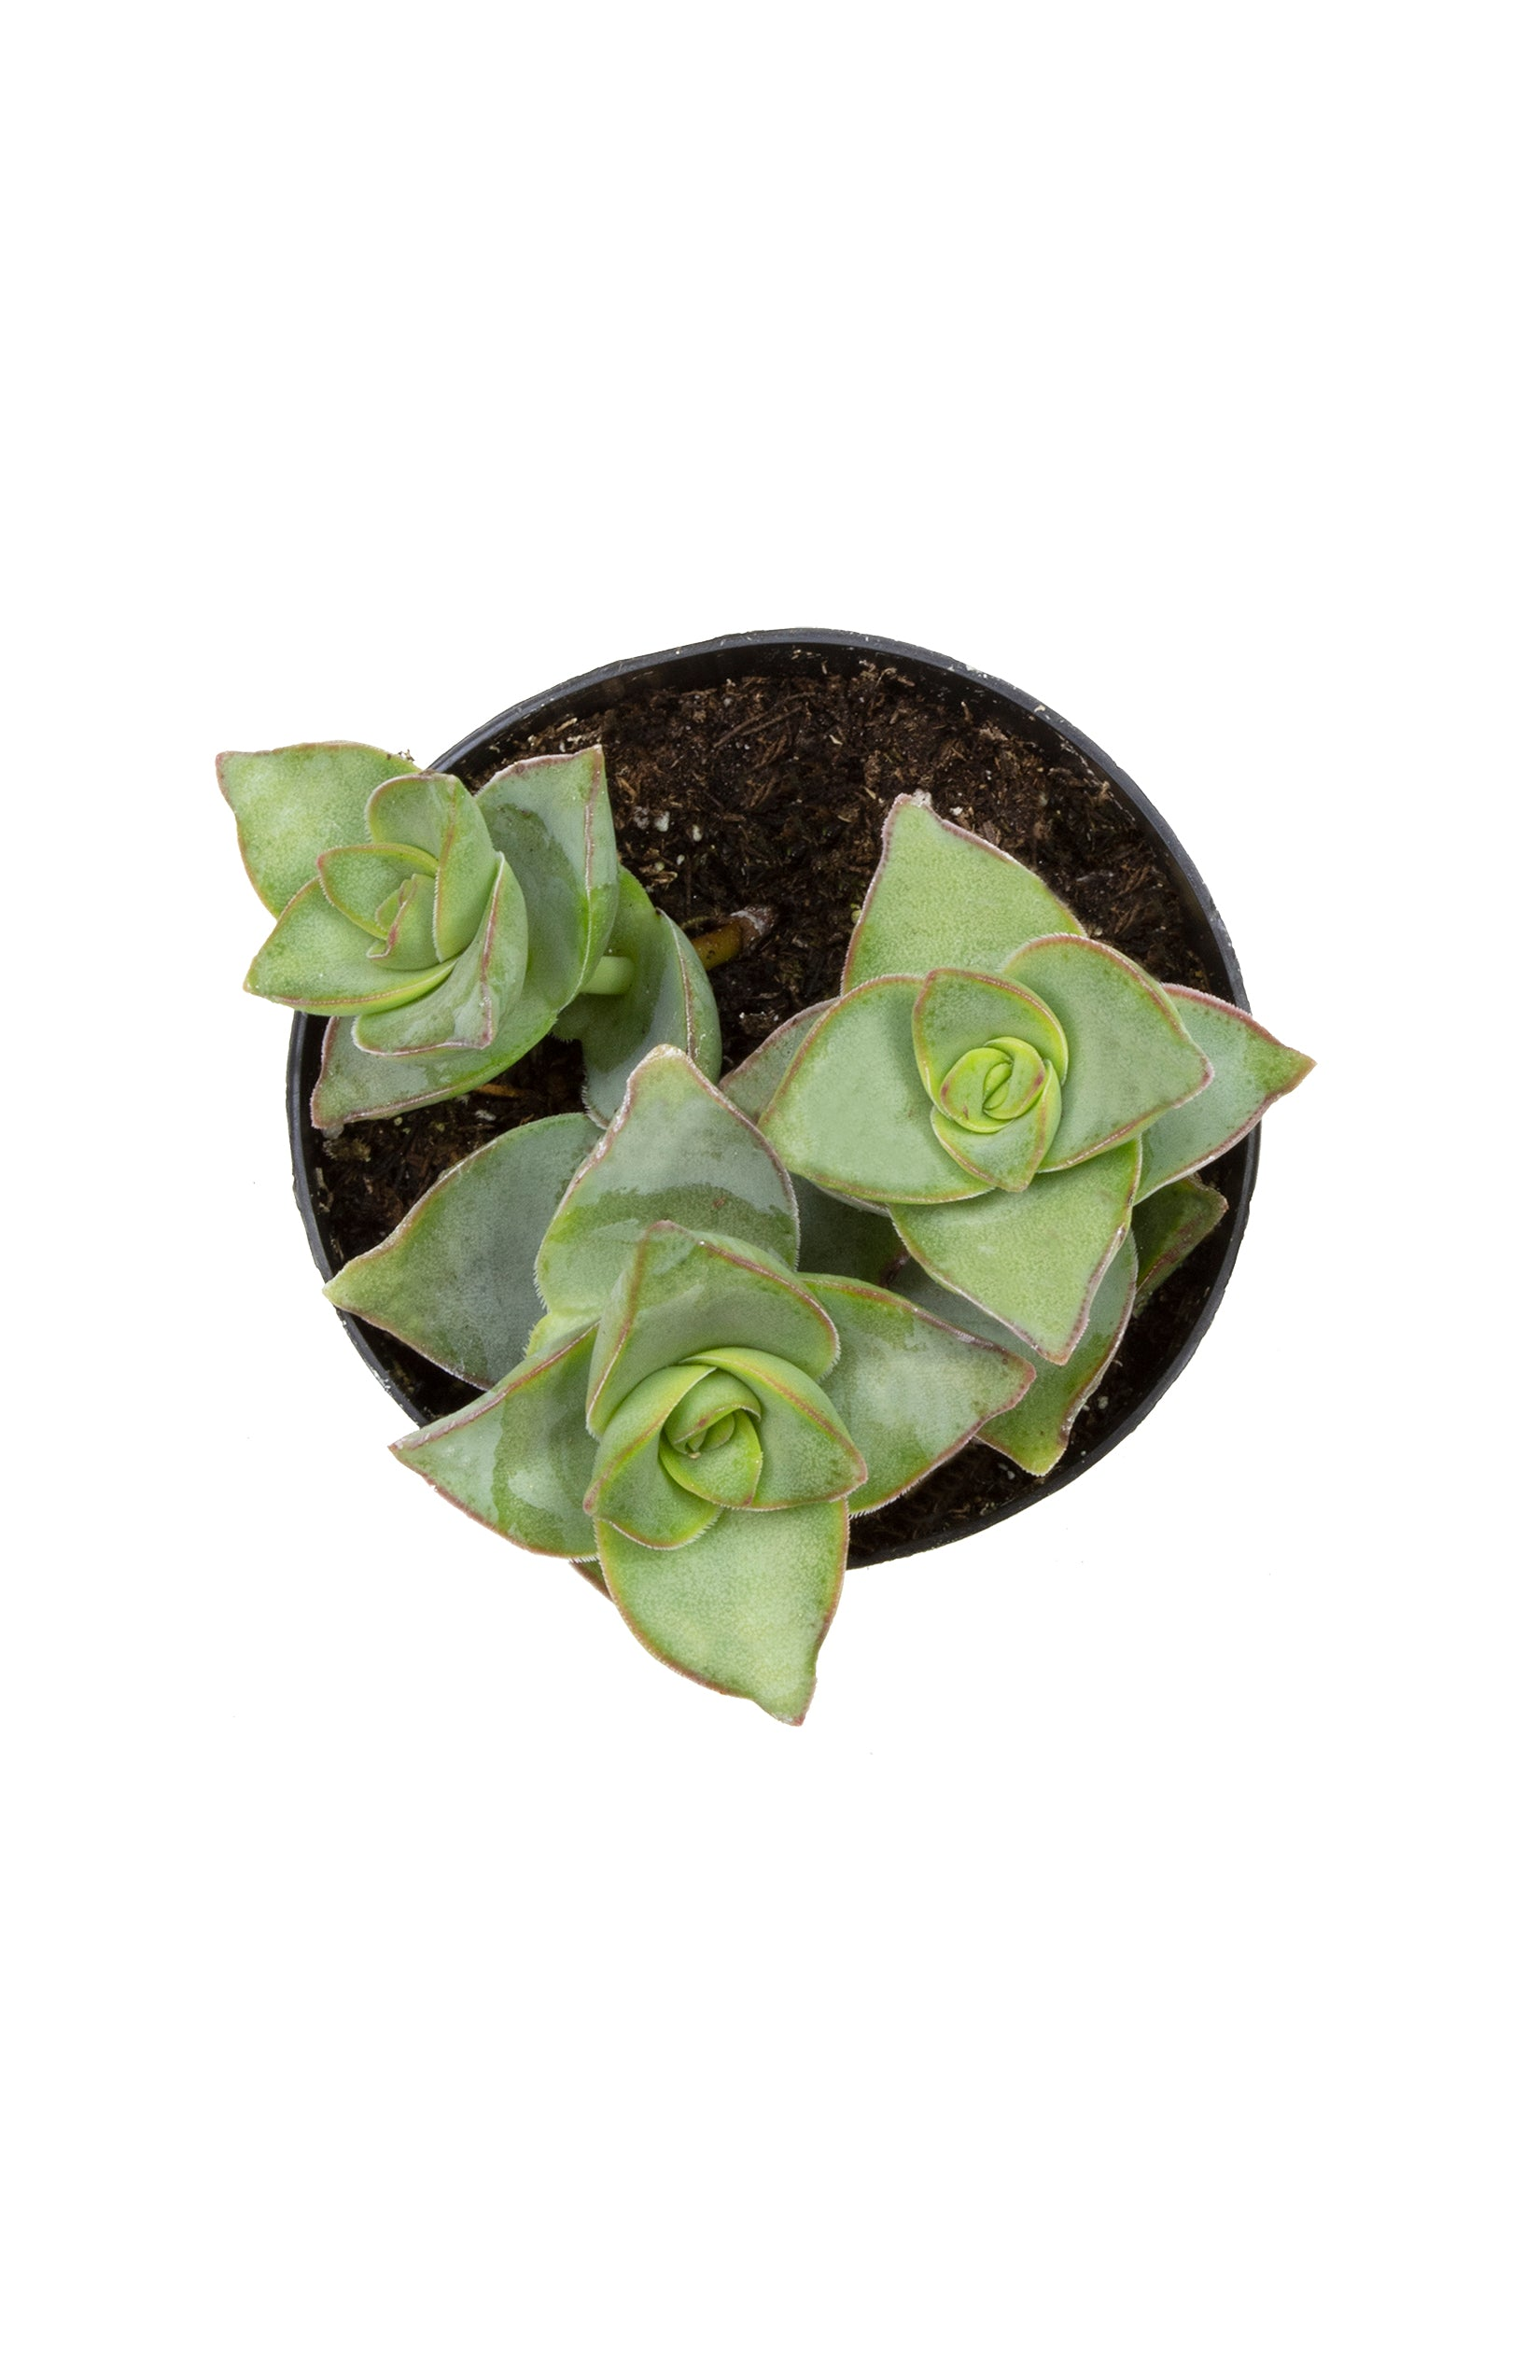 "Crassula perforata ""String of Buttons"" - 3.5"